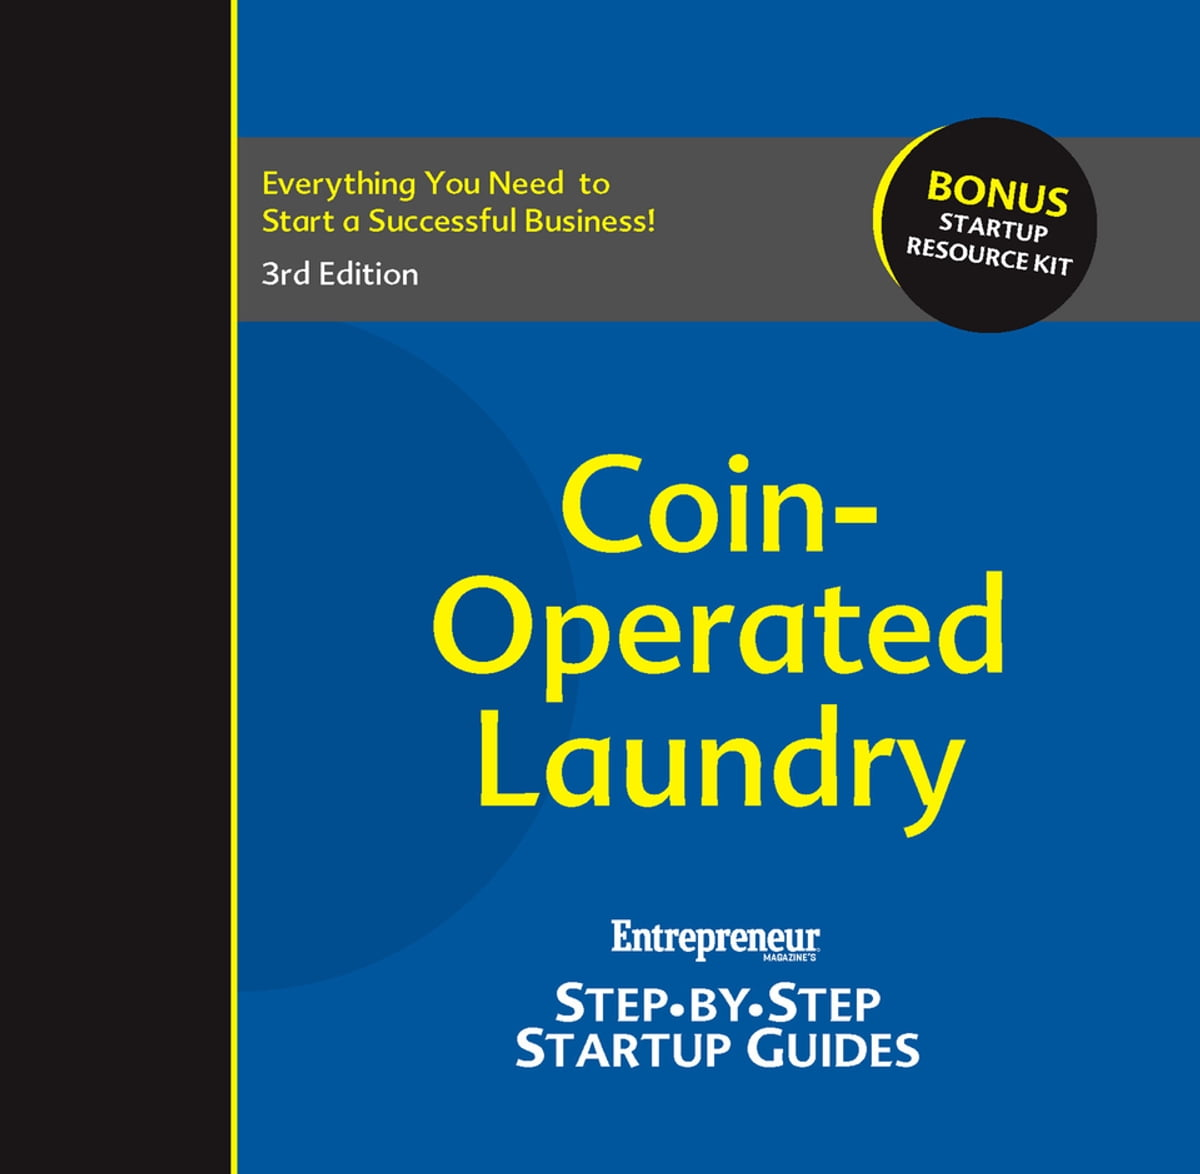 Coin-Operated Laundry: Entrepreneur's Step-by-Step Startup Guide ebook by  Entrepreneur magazine - Rakuten Kobo